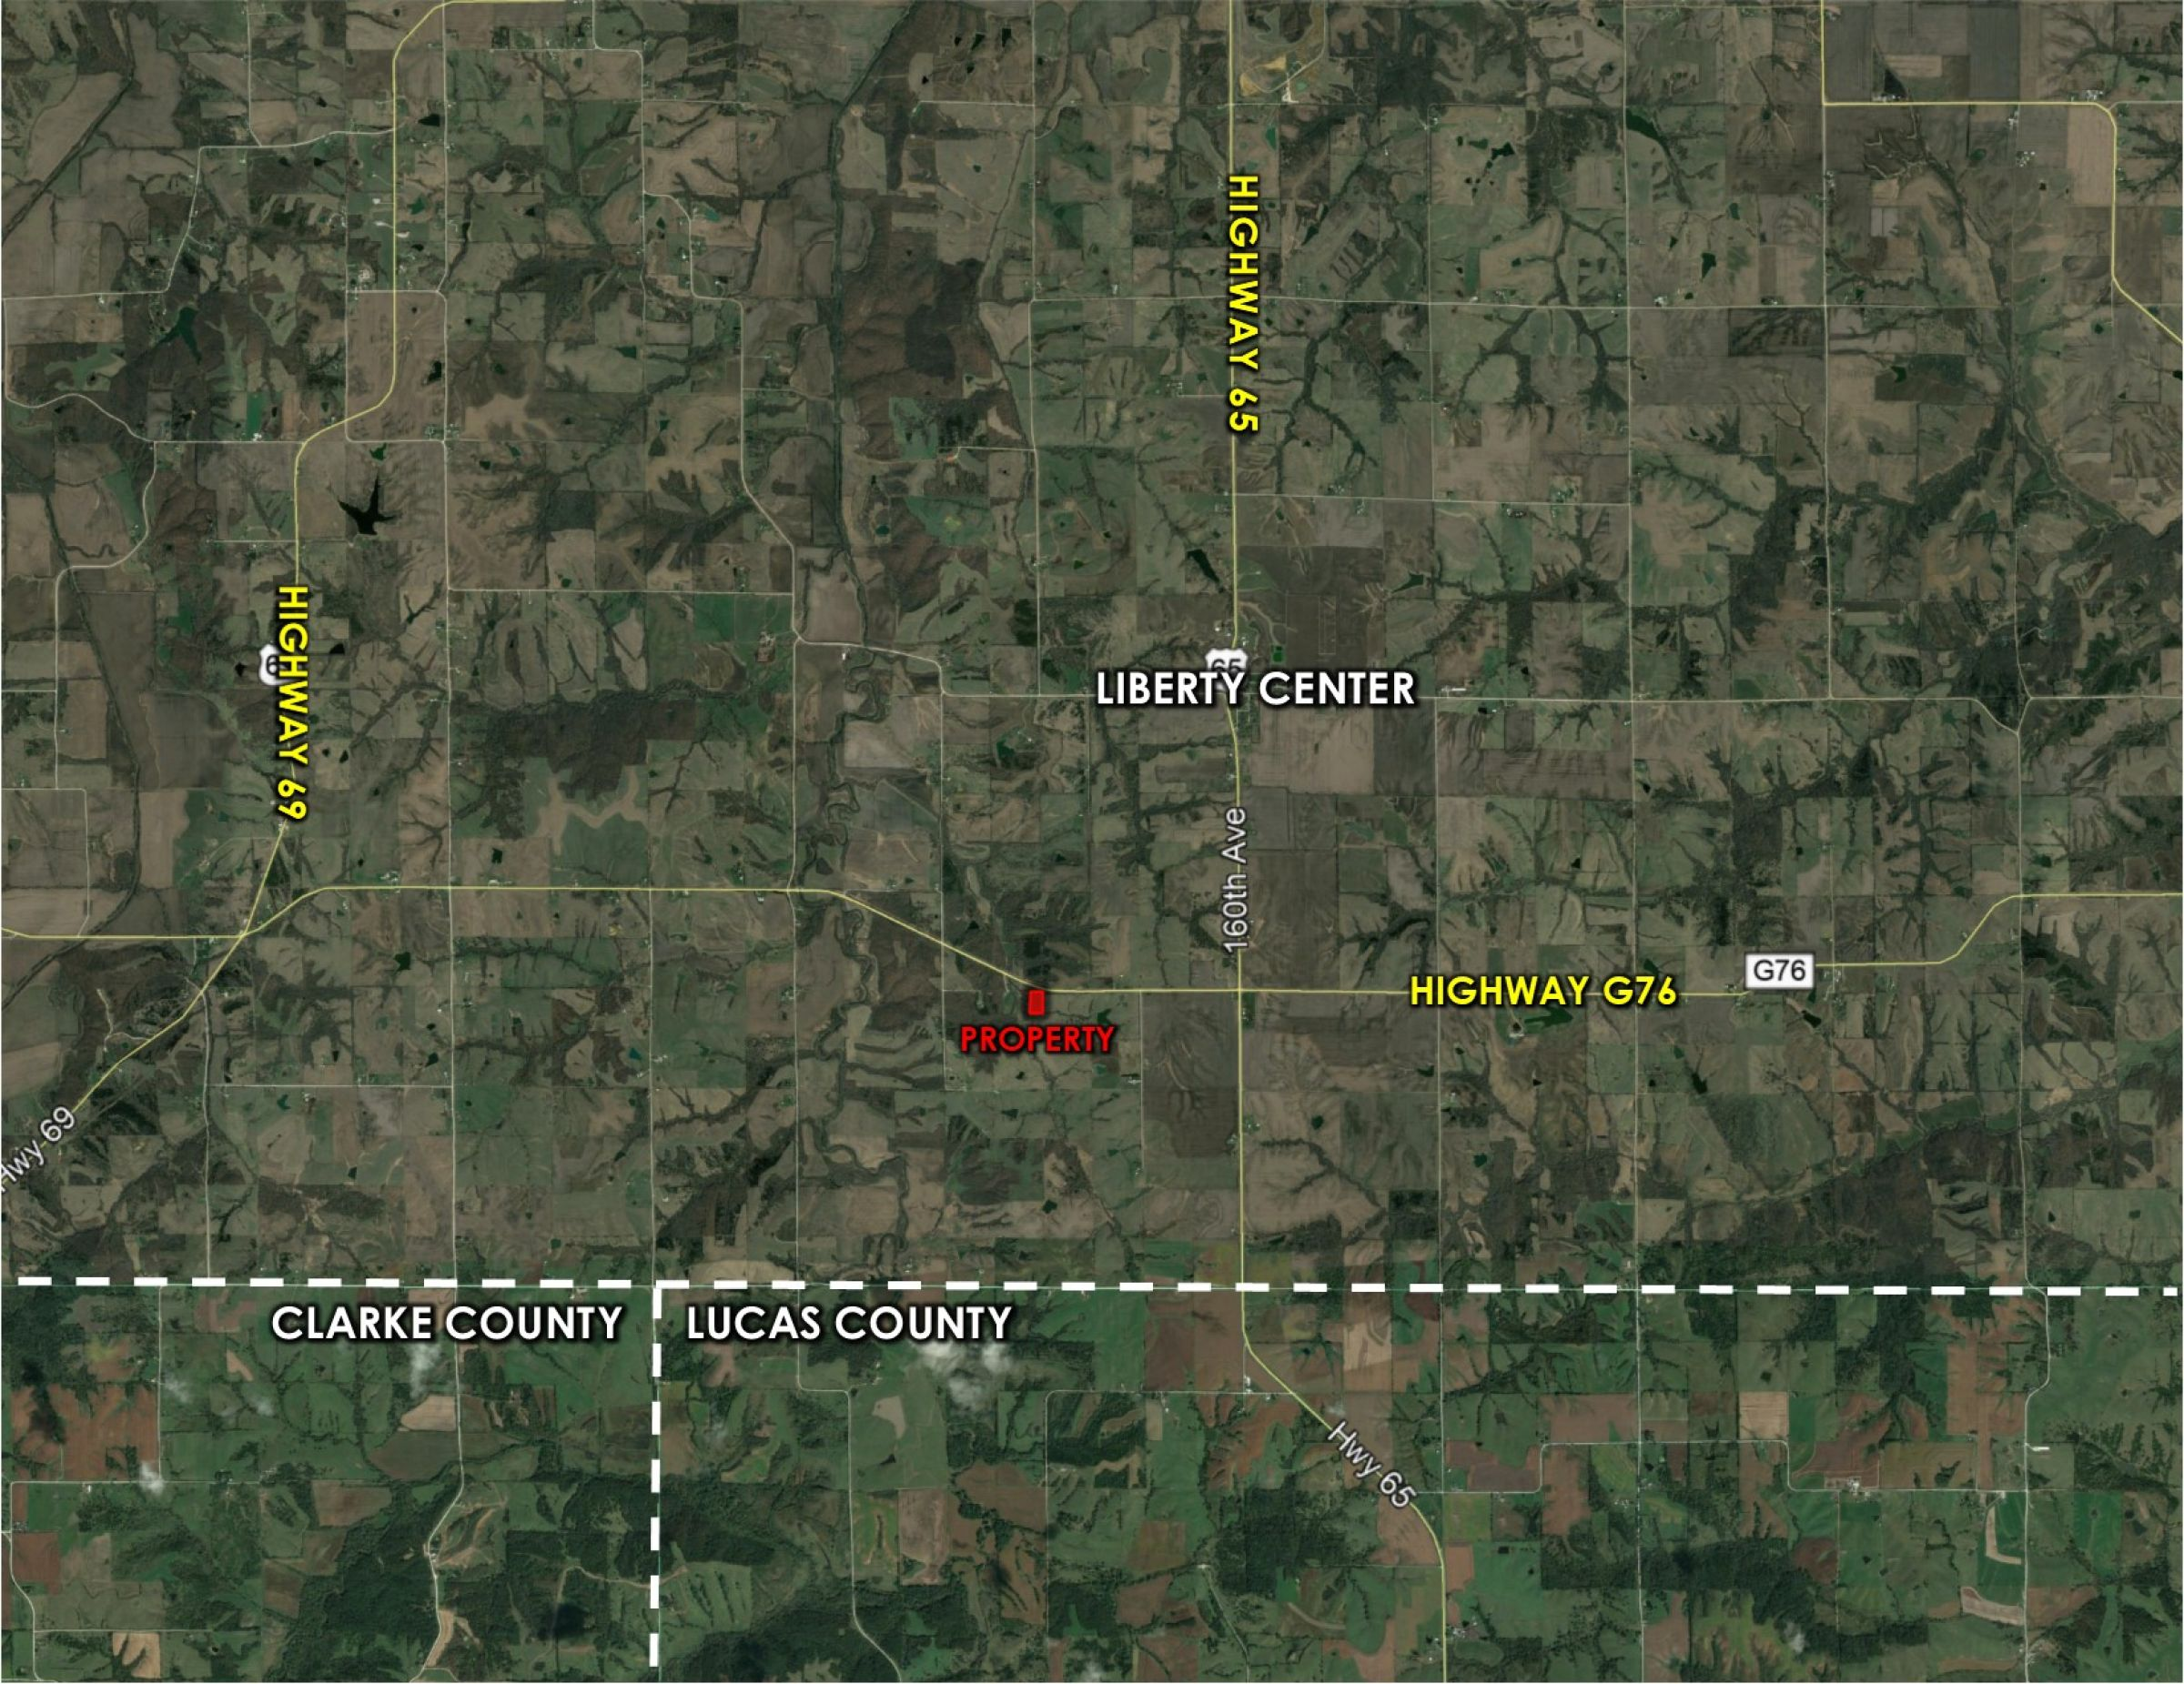 Peoples Company Acreage for Sale - #14547-15002-g76-highway-lacona-50139